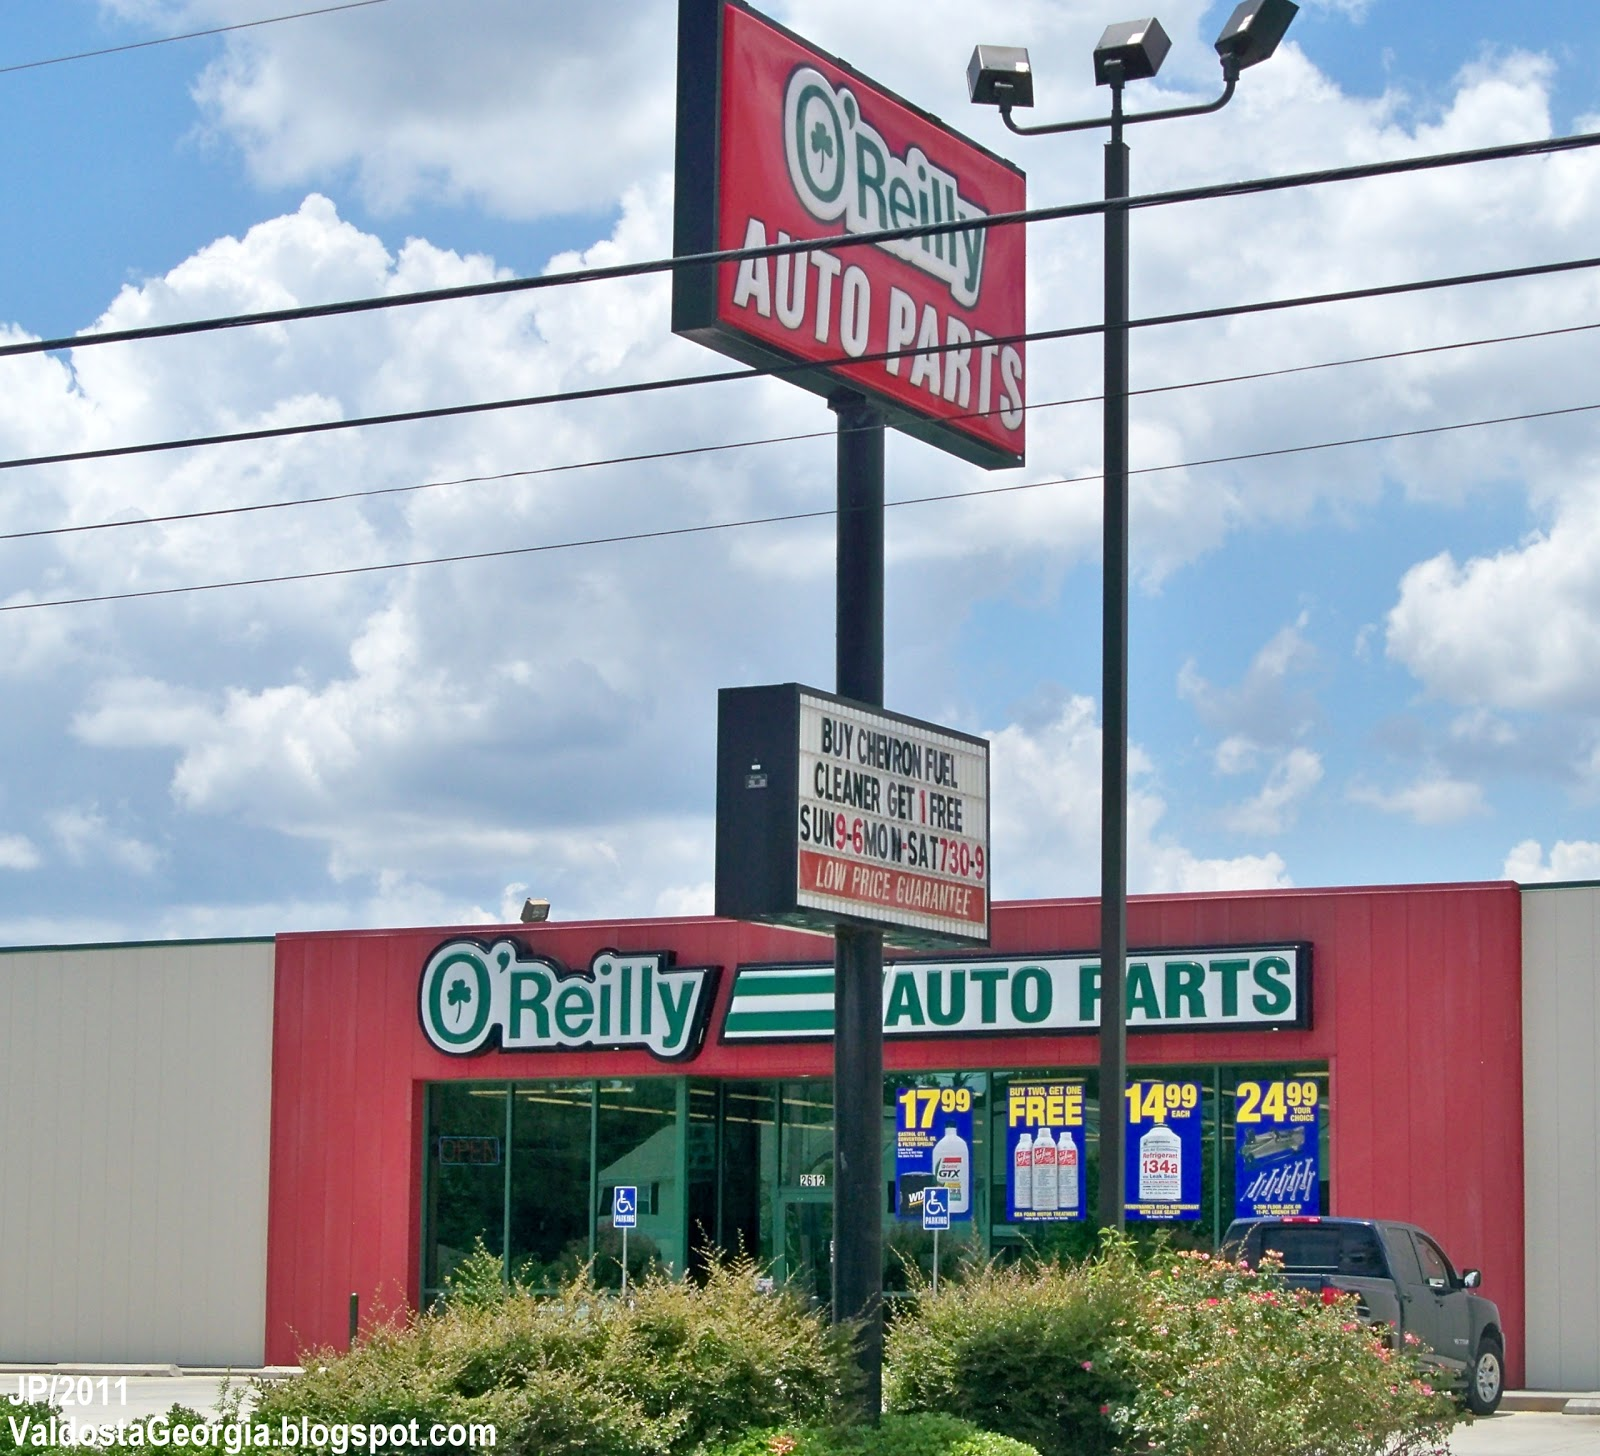 picture about O Reilly in Store Printable Coupons referred to as Oreilly coupon codes 2018 in just shop : Wix coupon codes december 2018